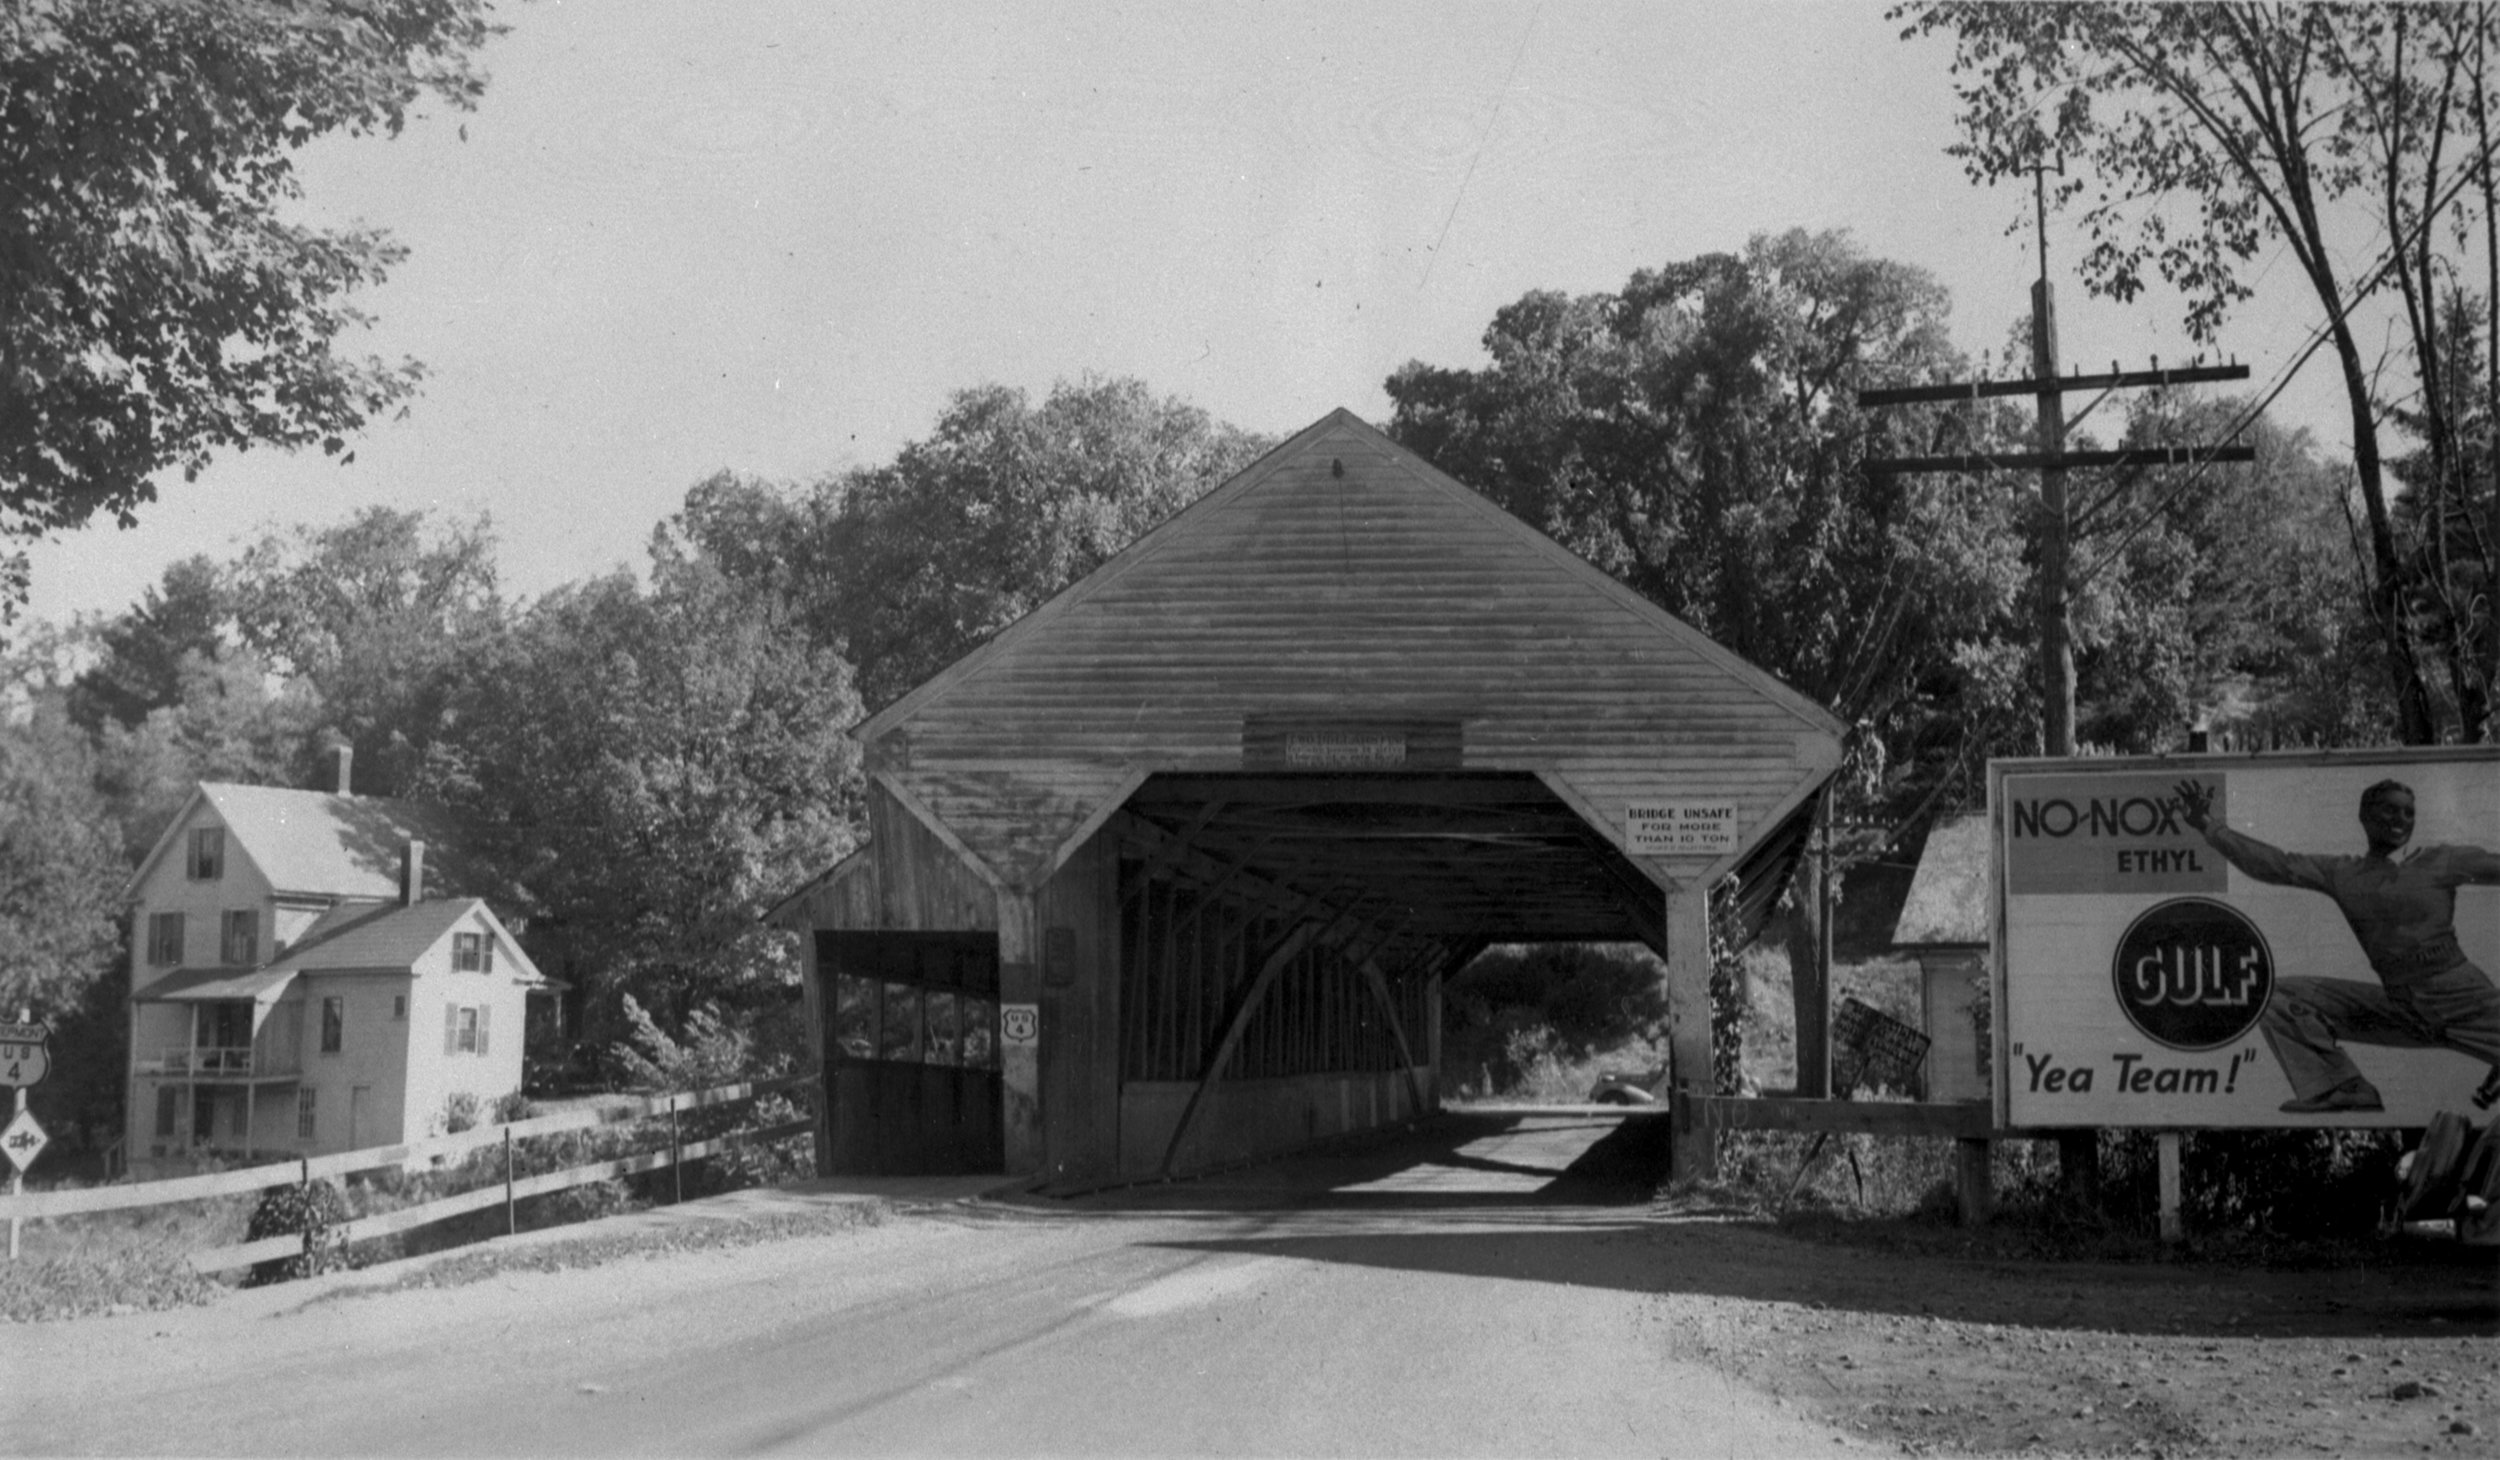 The covered bridge was located near the present-day Recreation Center.